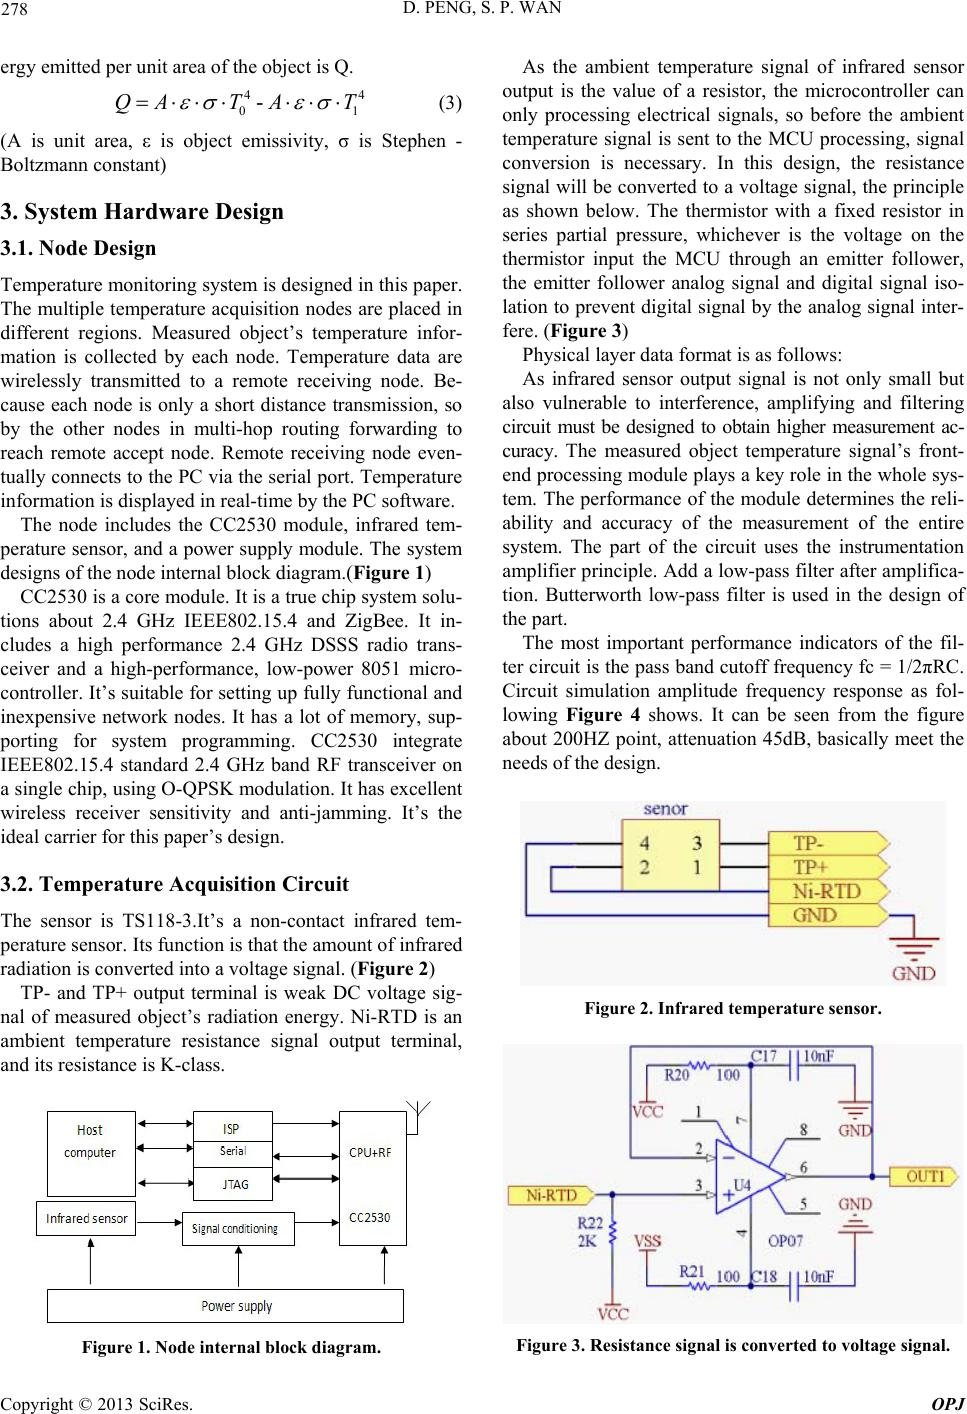 Industrial Temperature Monitoring System Design Based On Zigbee And Figure 3 Sensor Schematic D Peng S P Wan